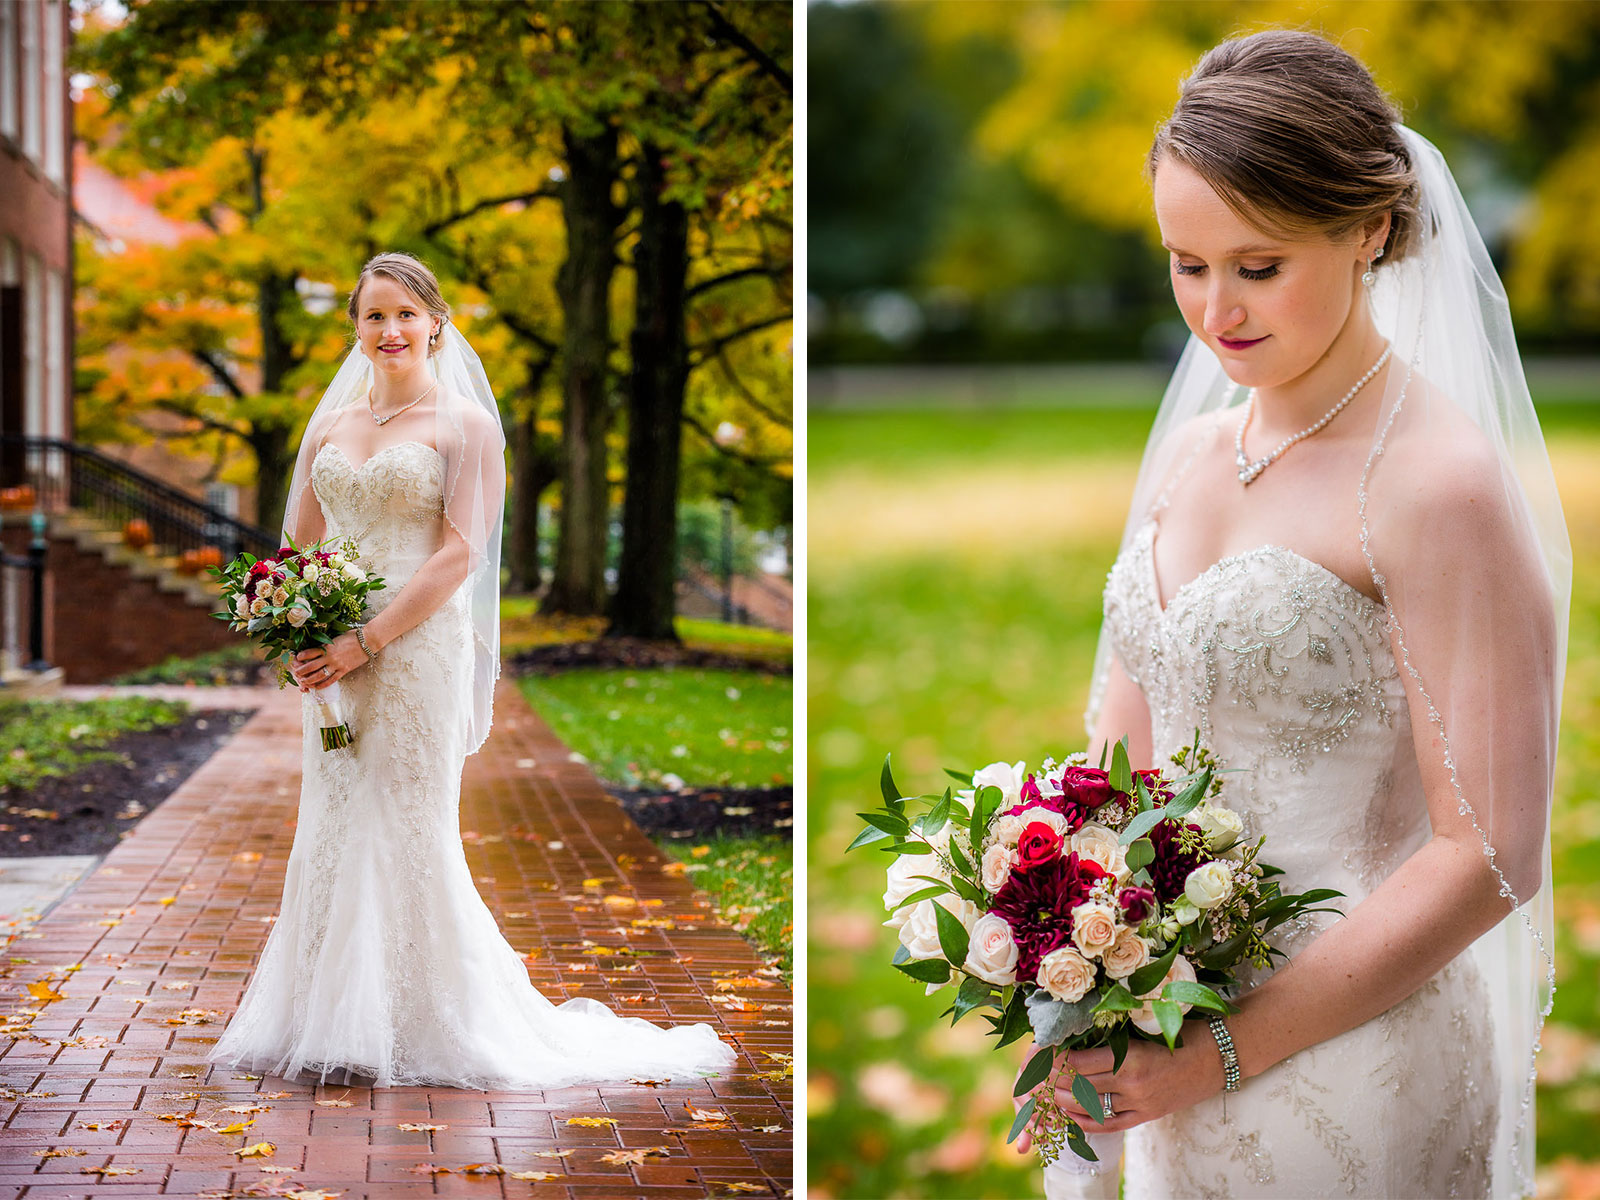 Eric_and_Christy_Photography_Blog_Wedding_Erica_Mike-41-42